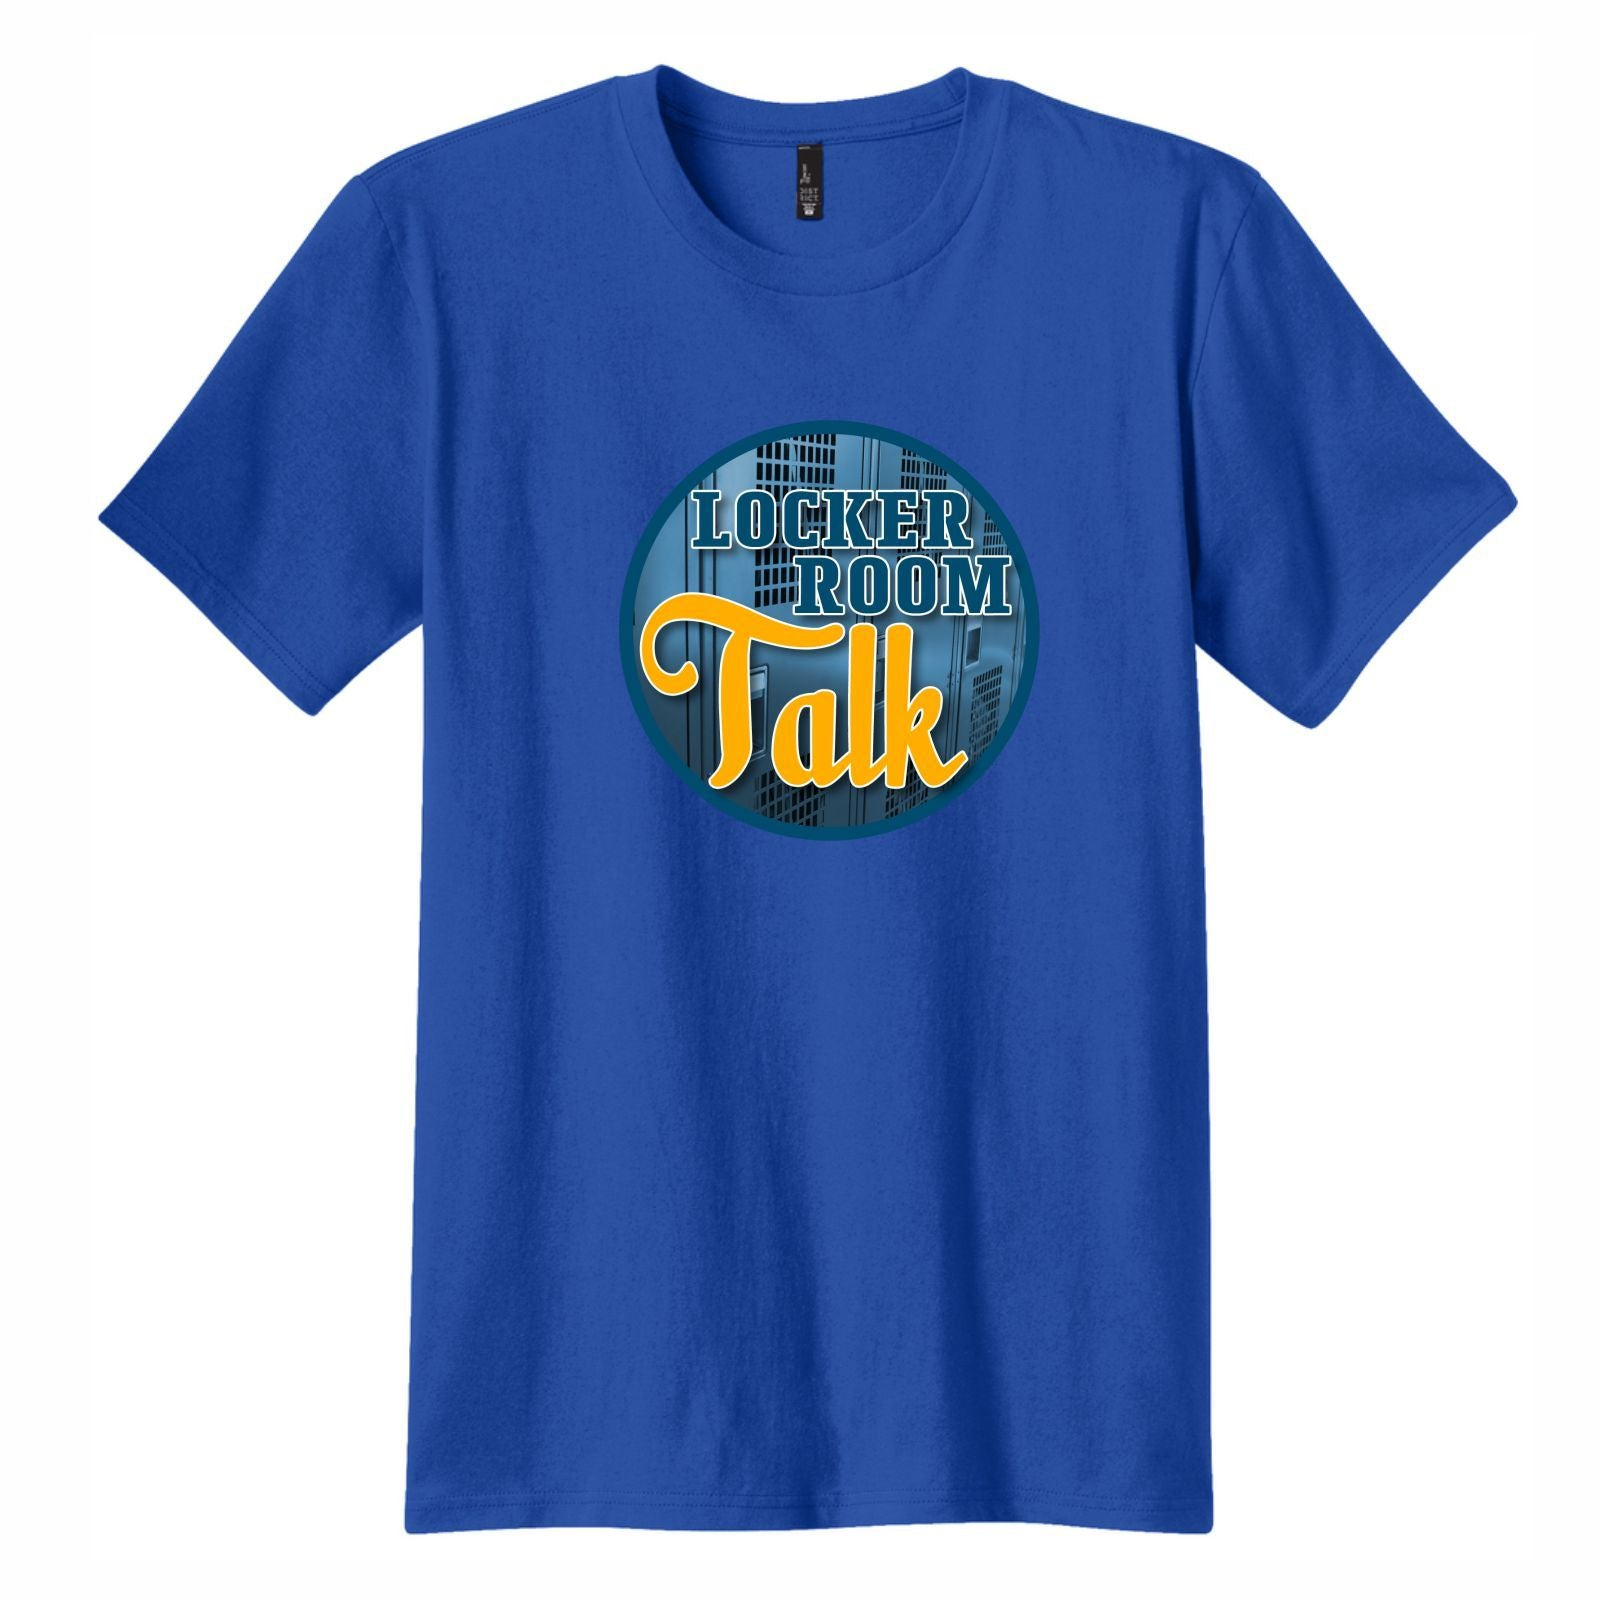 Locker Room Talk - Men's Short Sleeve Tee Royal